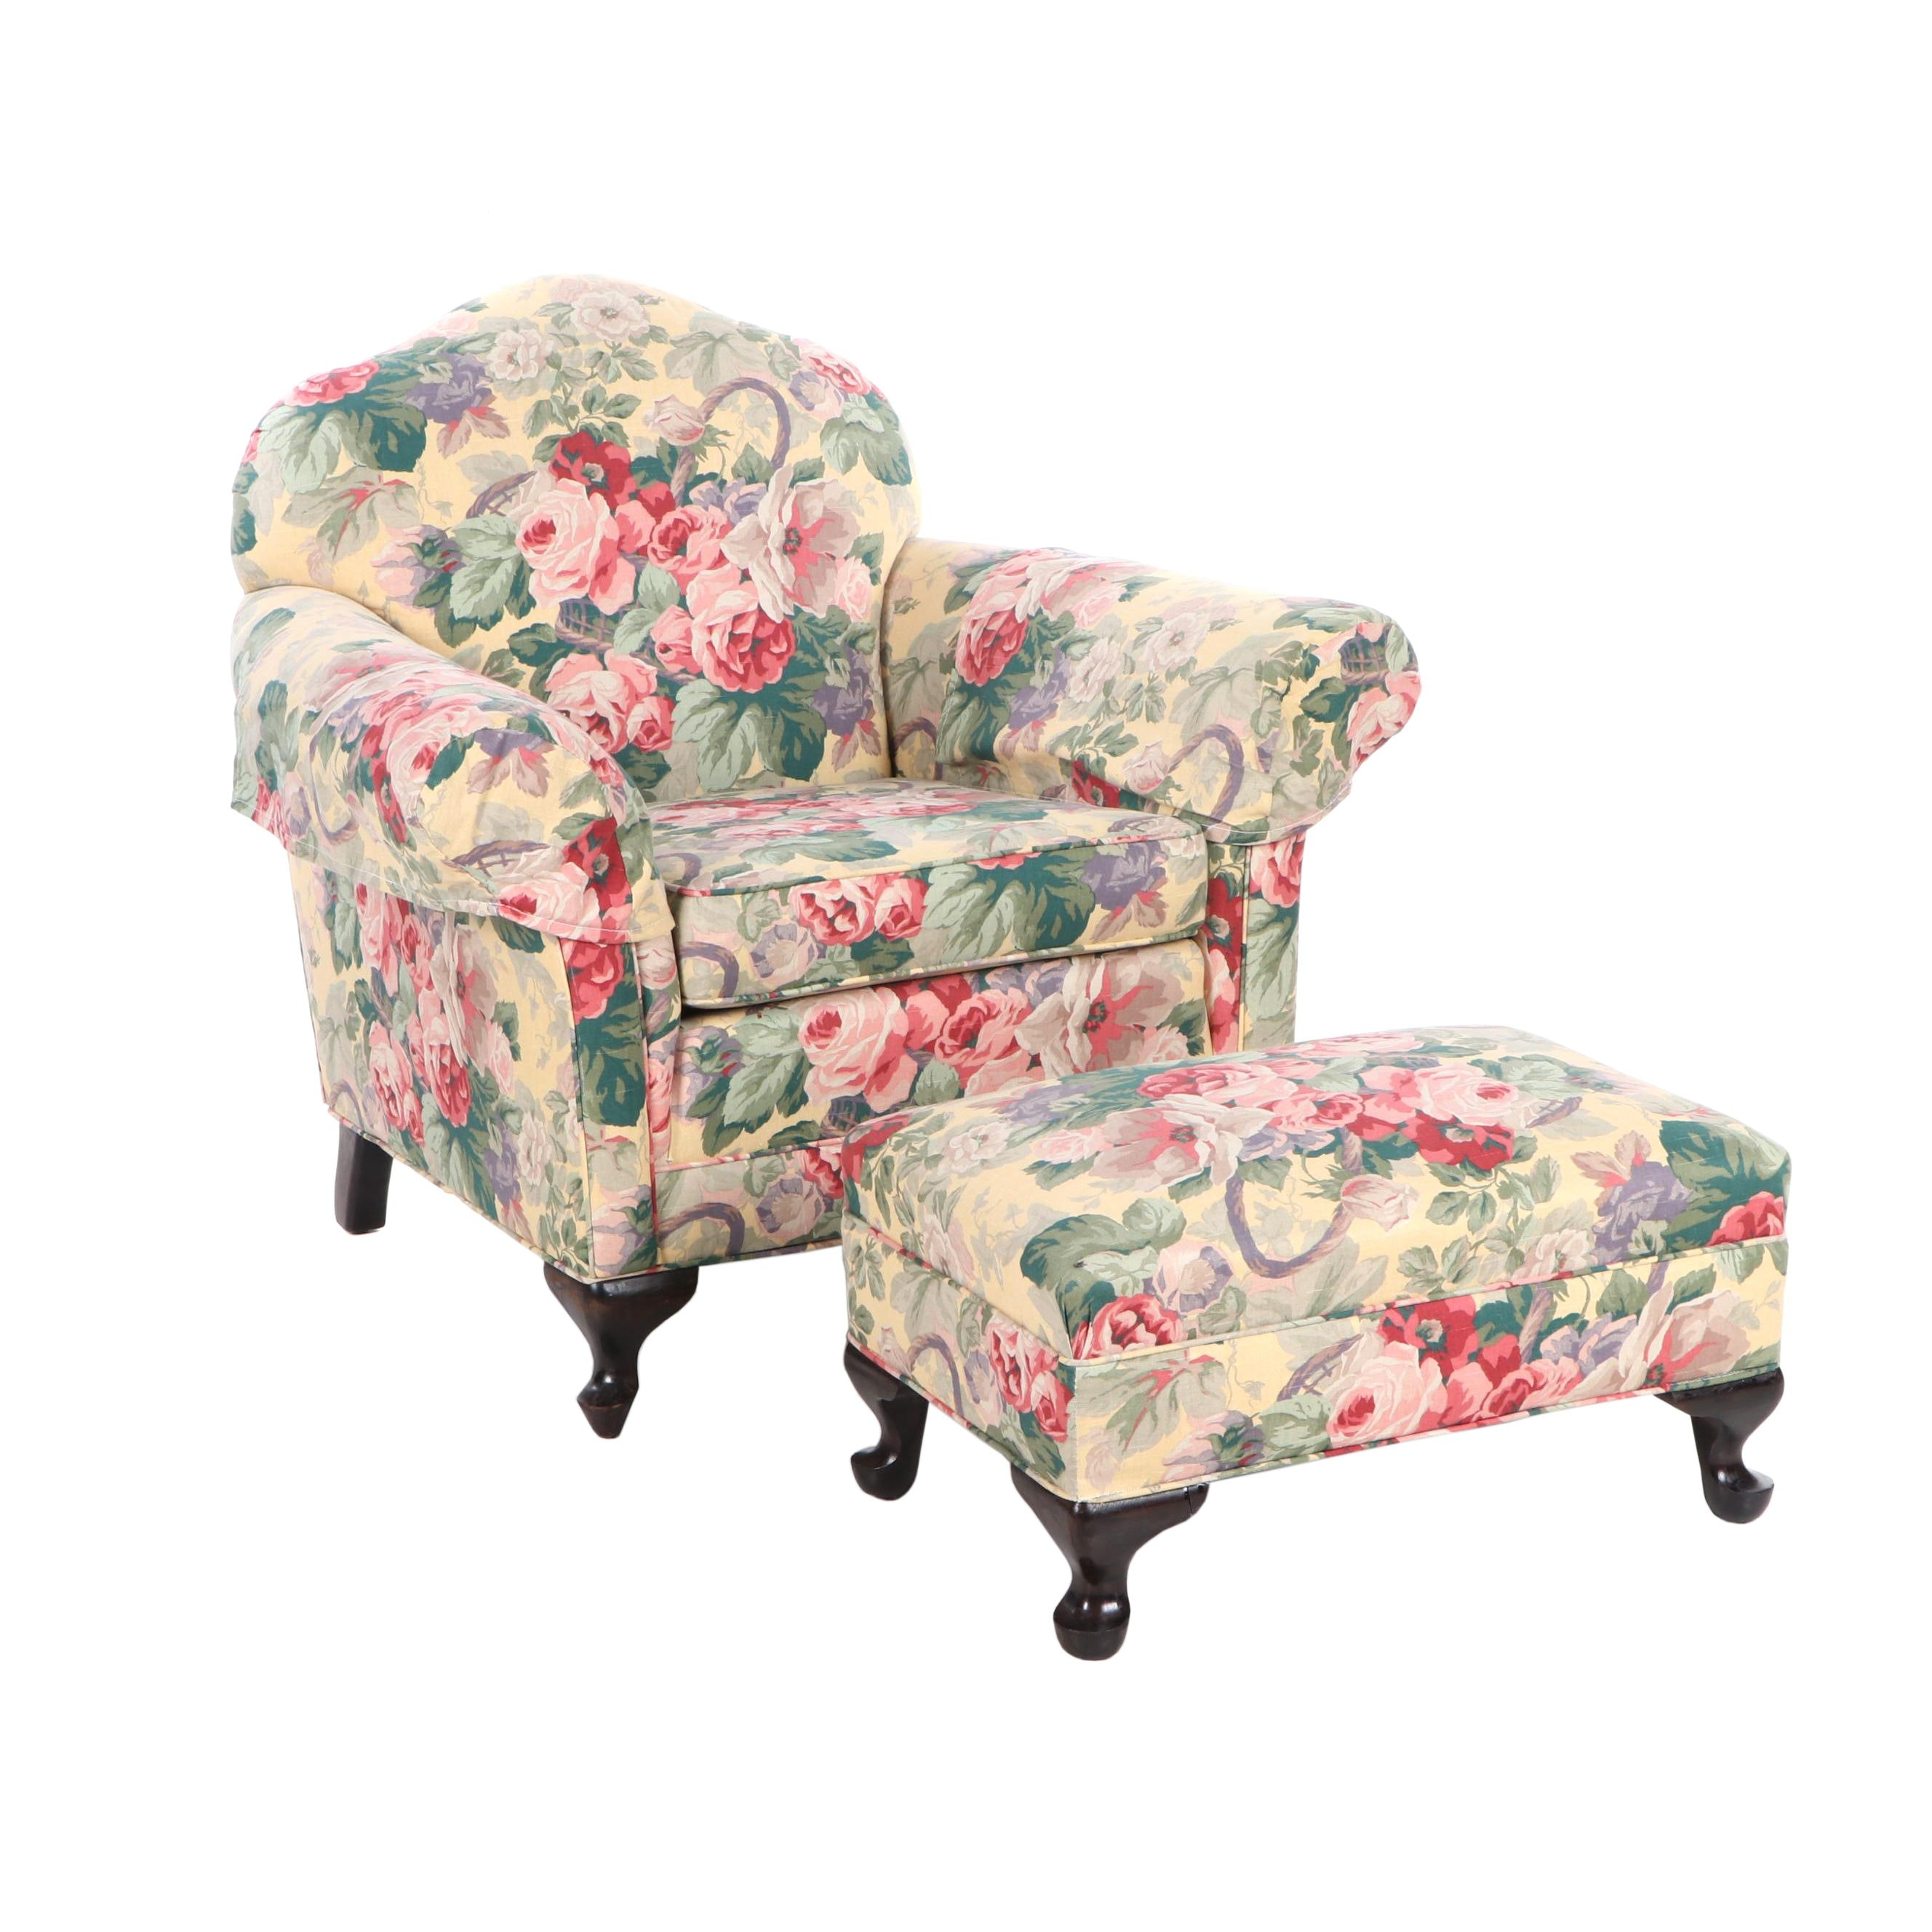 Upholstered Armchair and Ottoman with Floral Pattern, Mid-Century